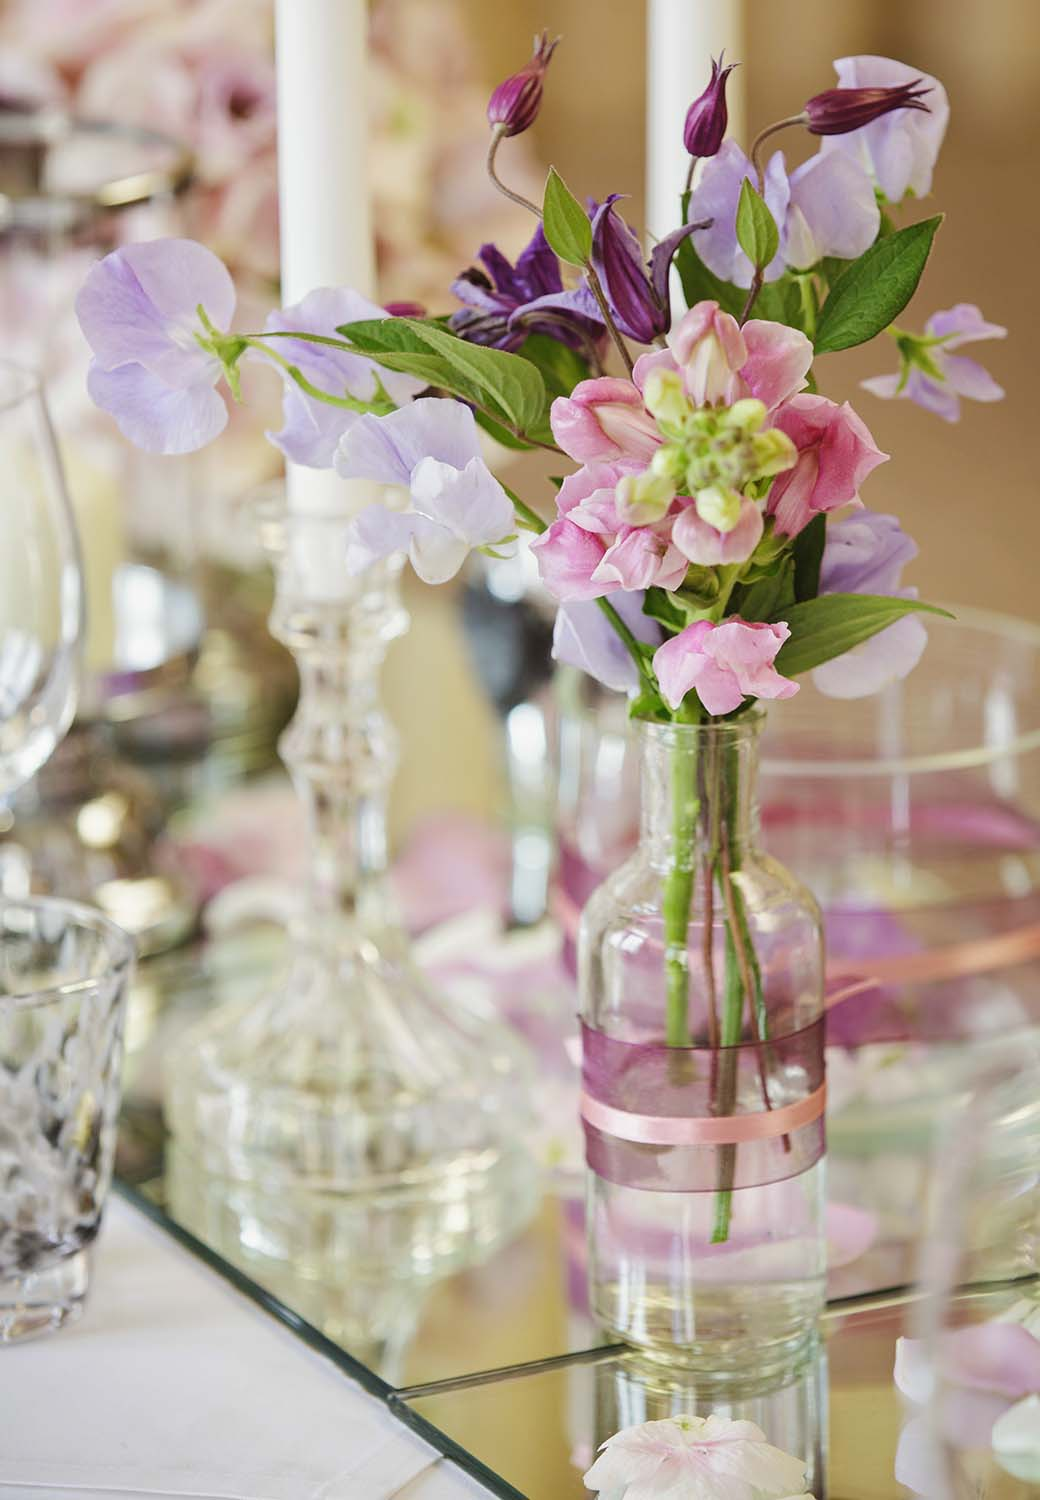 Wedding venues worcestershire wedding table set up with flowers